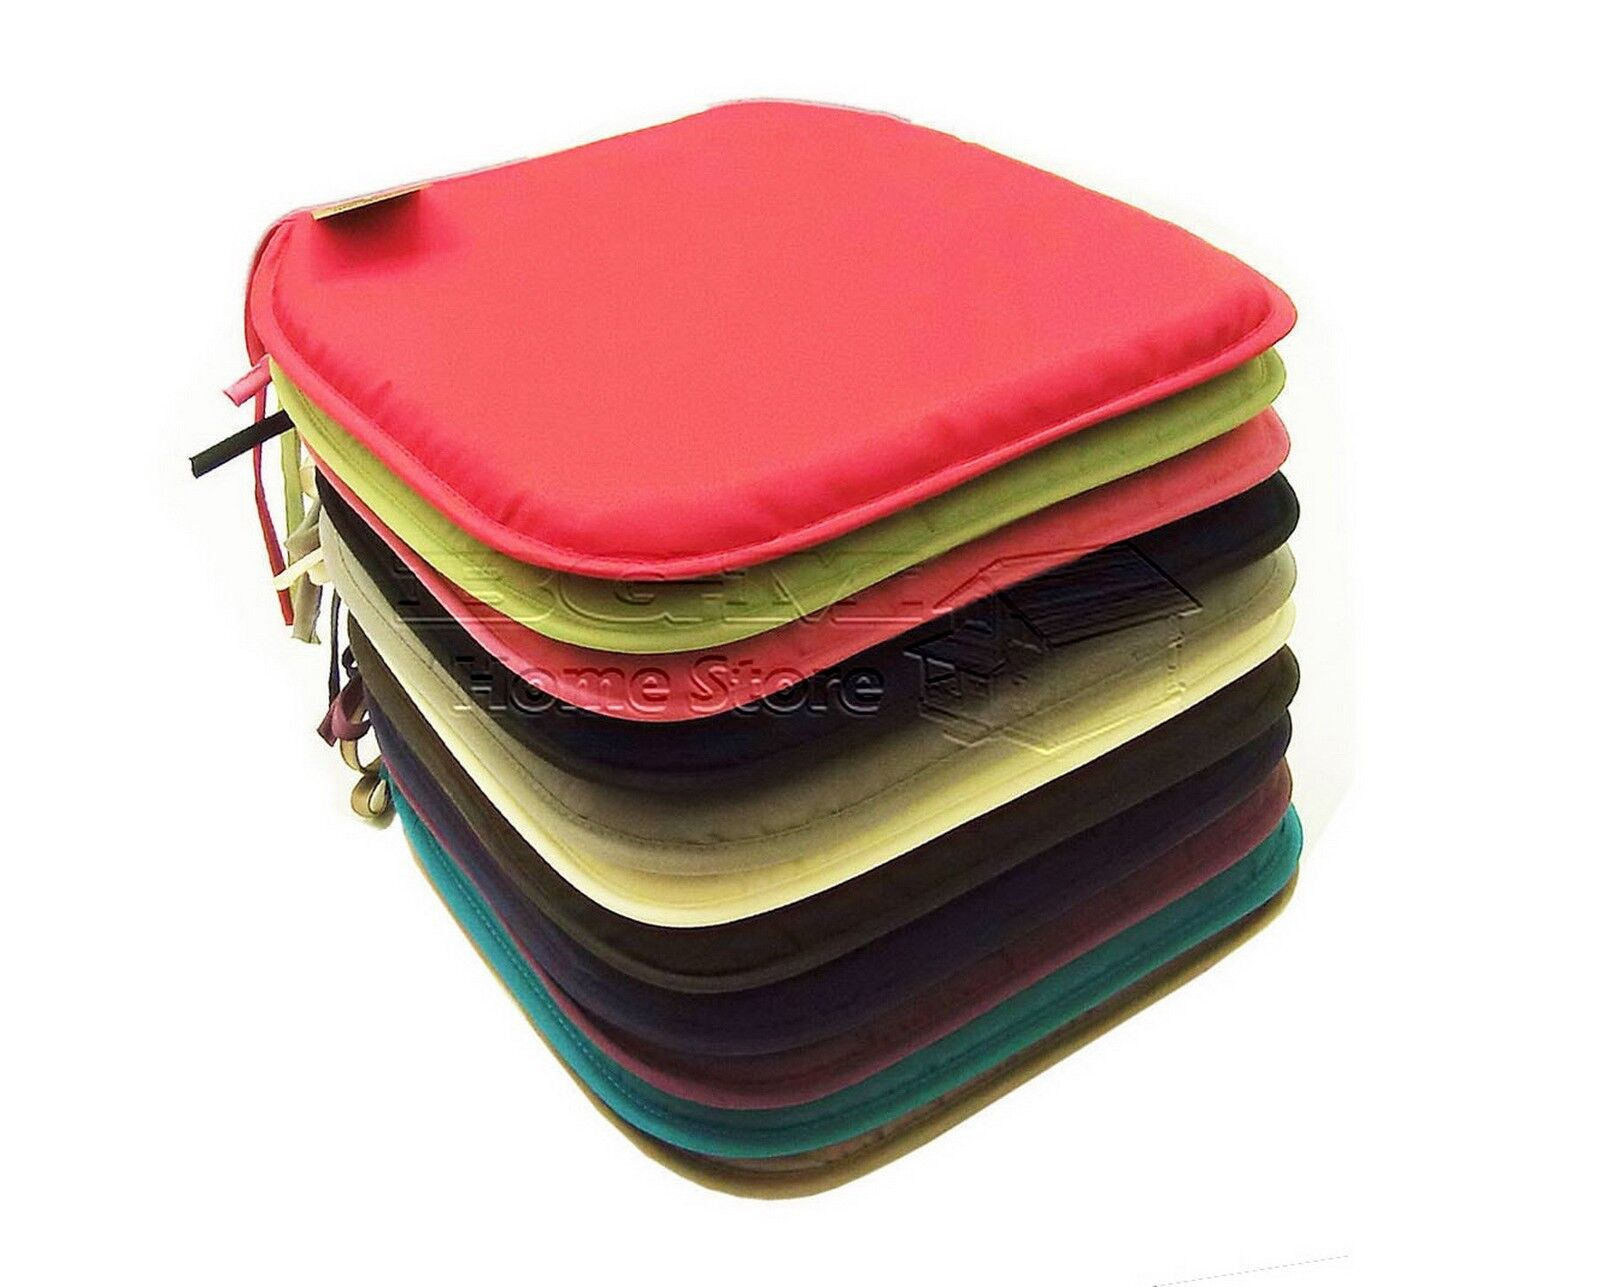 foam cushion inserts for chairs ikea dining chair covers canada luxury tie on removable seat pads